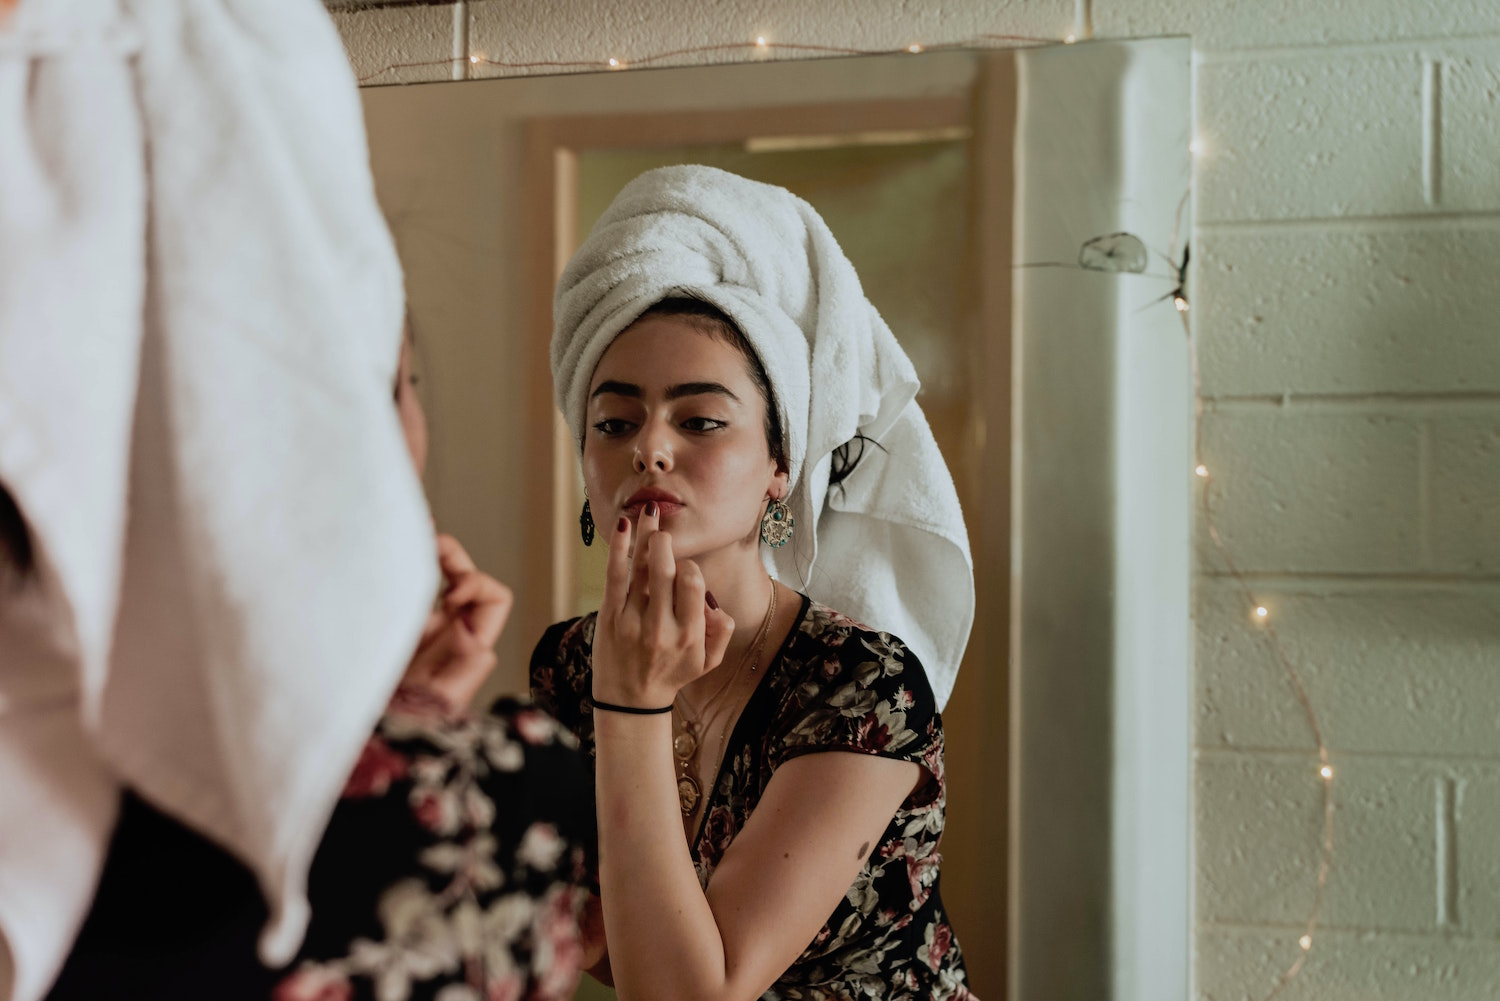 5 Essential Steps to Keep your Beauty Routine on Track During Quarantine